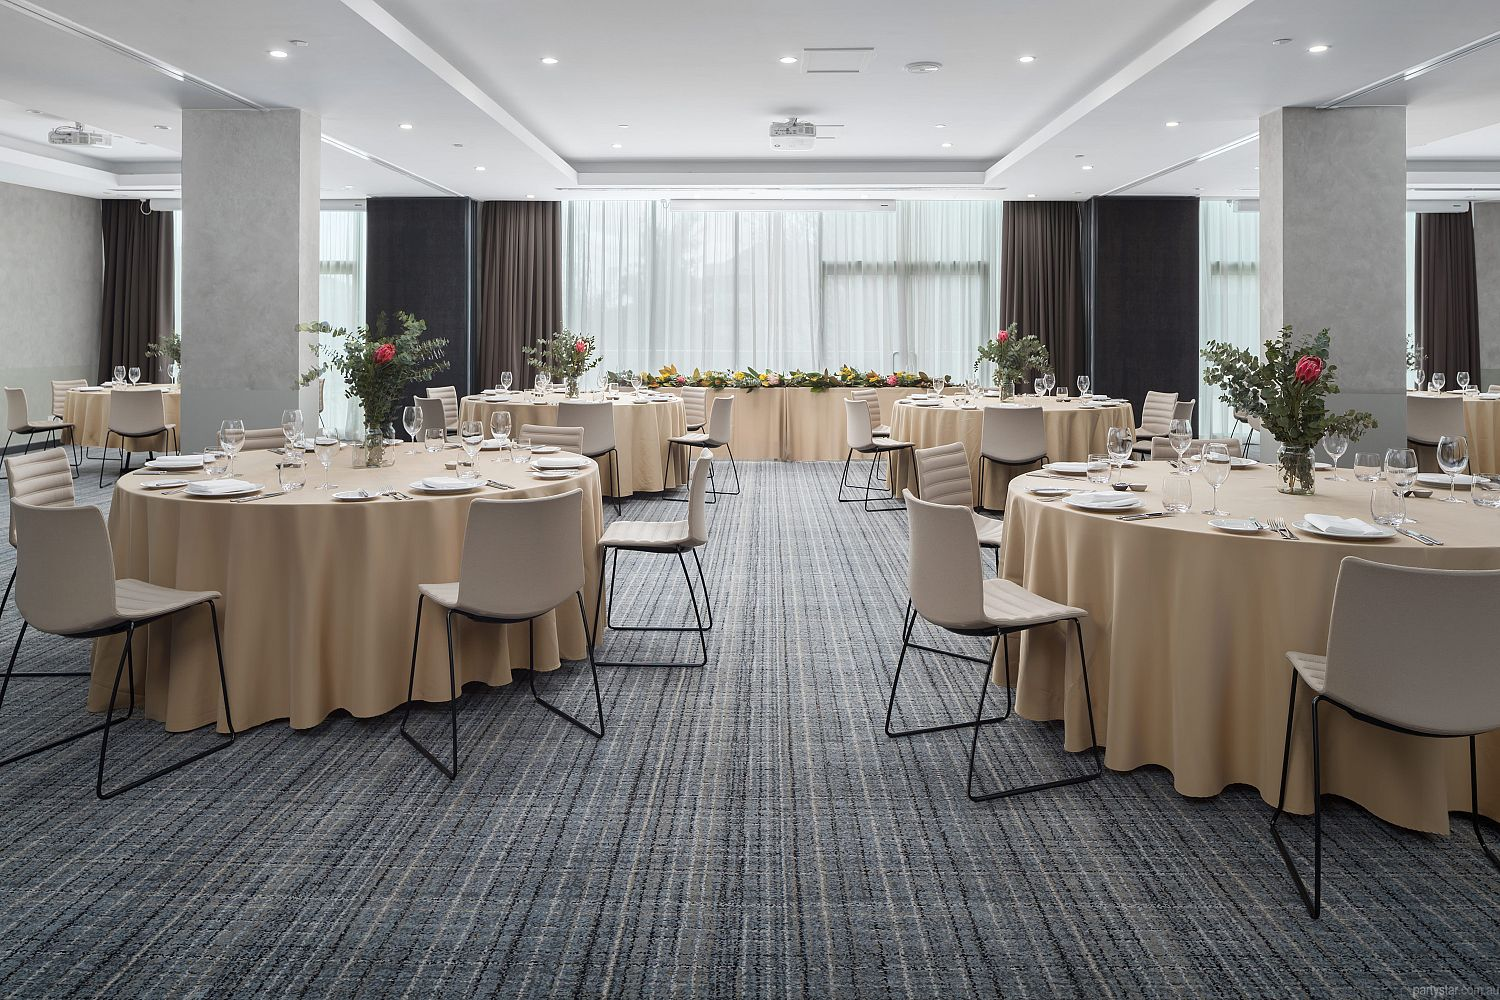 Rydges Canberra, Forrest, ACT. Function Room hire photo #4